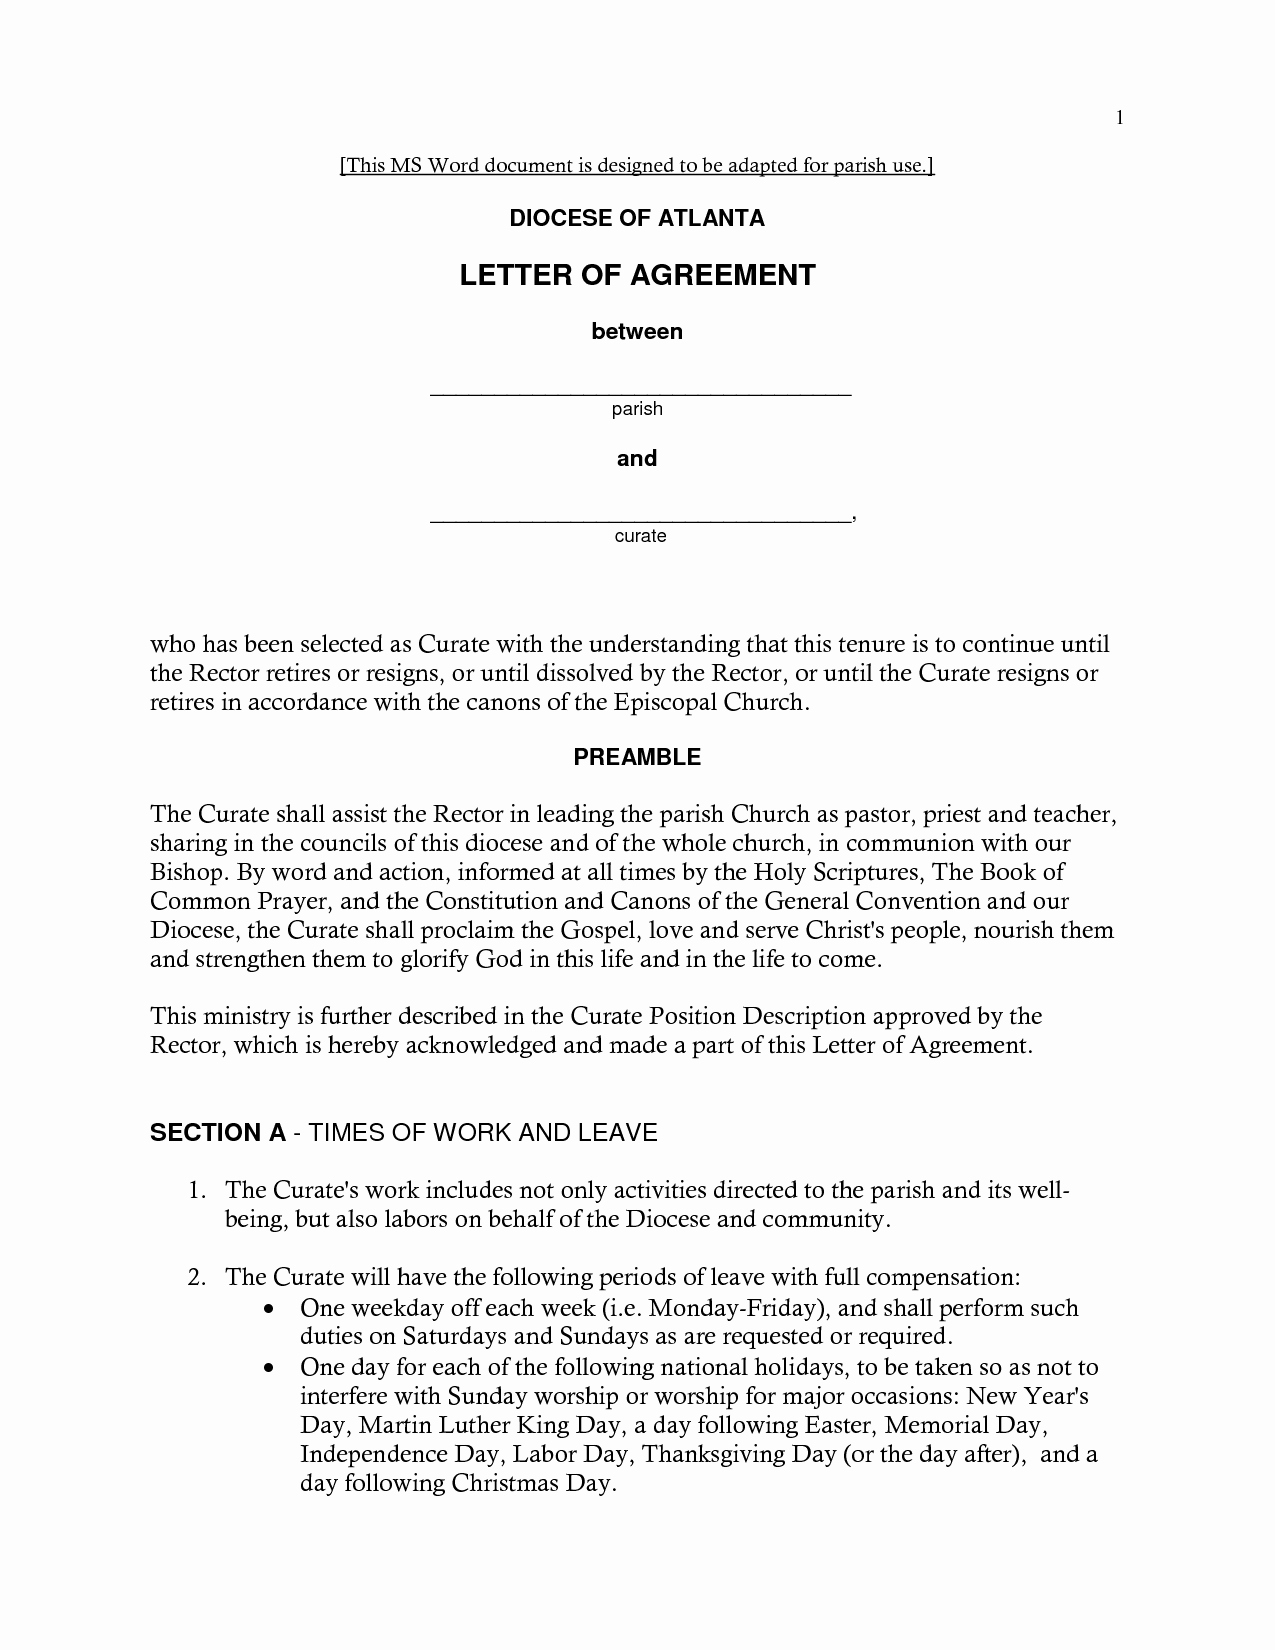 Real Estate Introduction Letter to Friends Template - Real Estate Introduction Letter to Friends Template Beautiful Letter